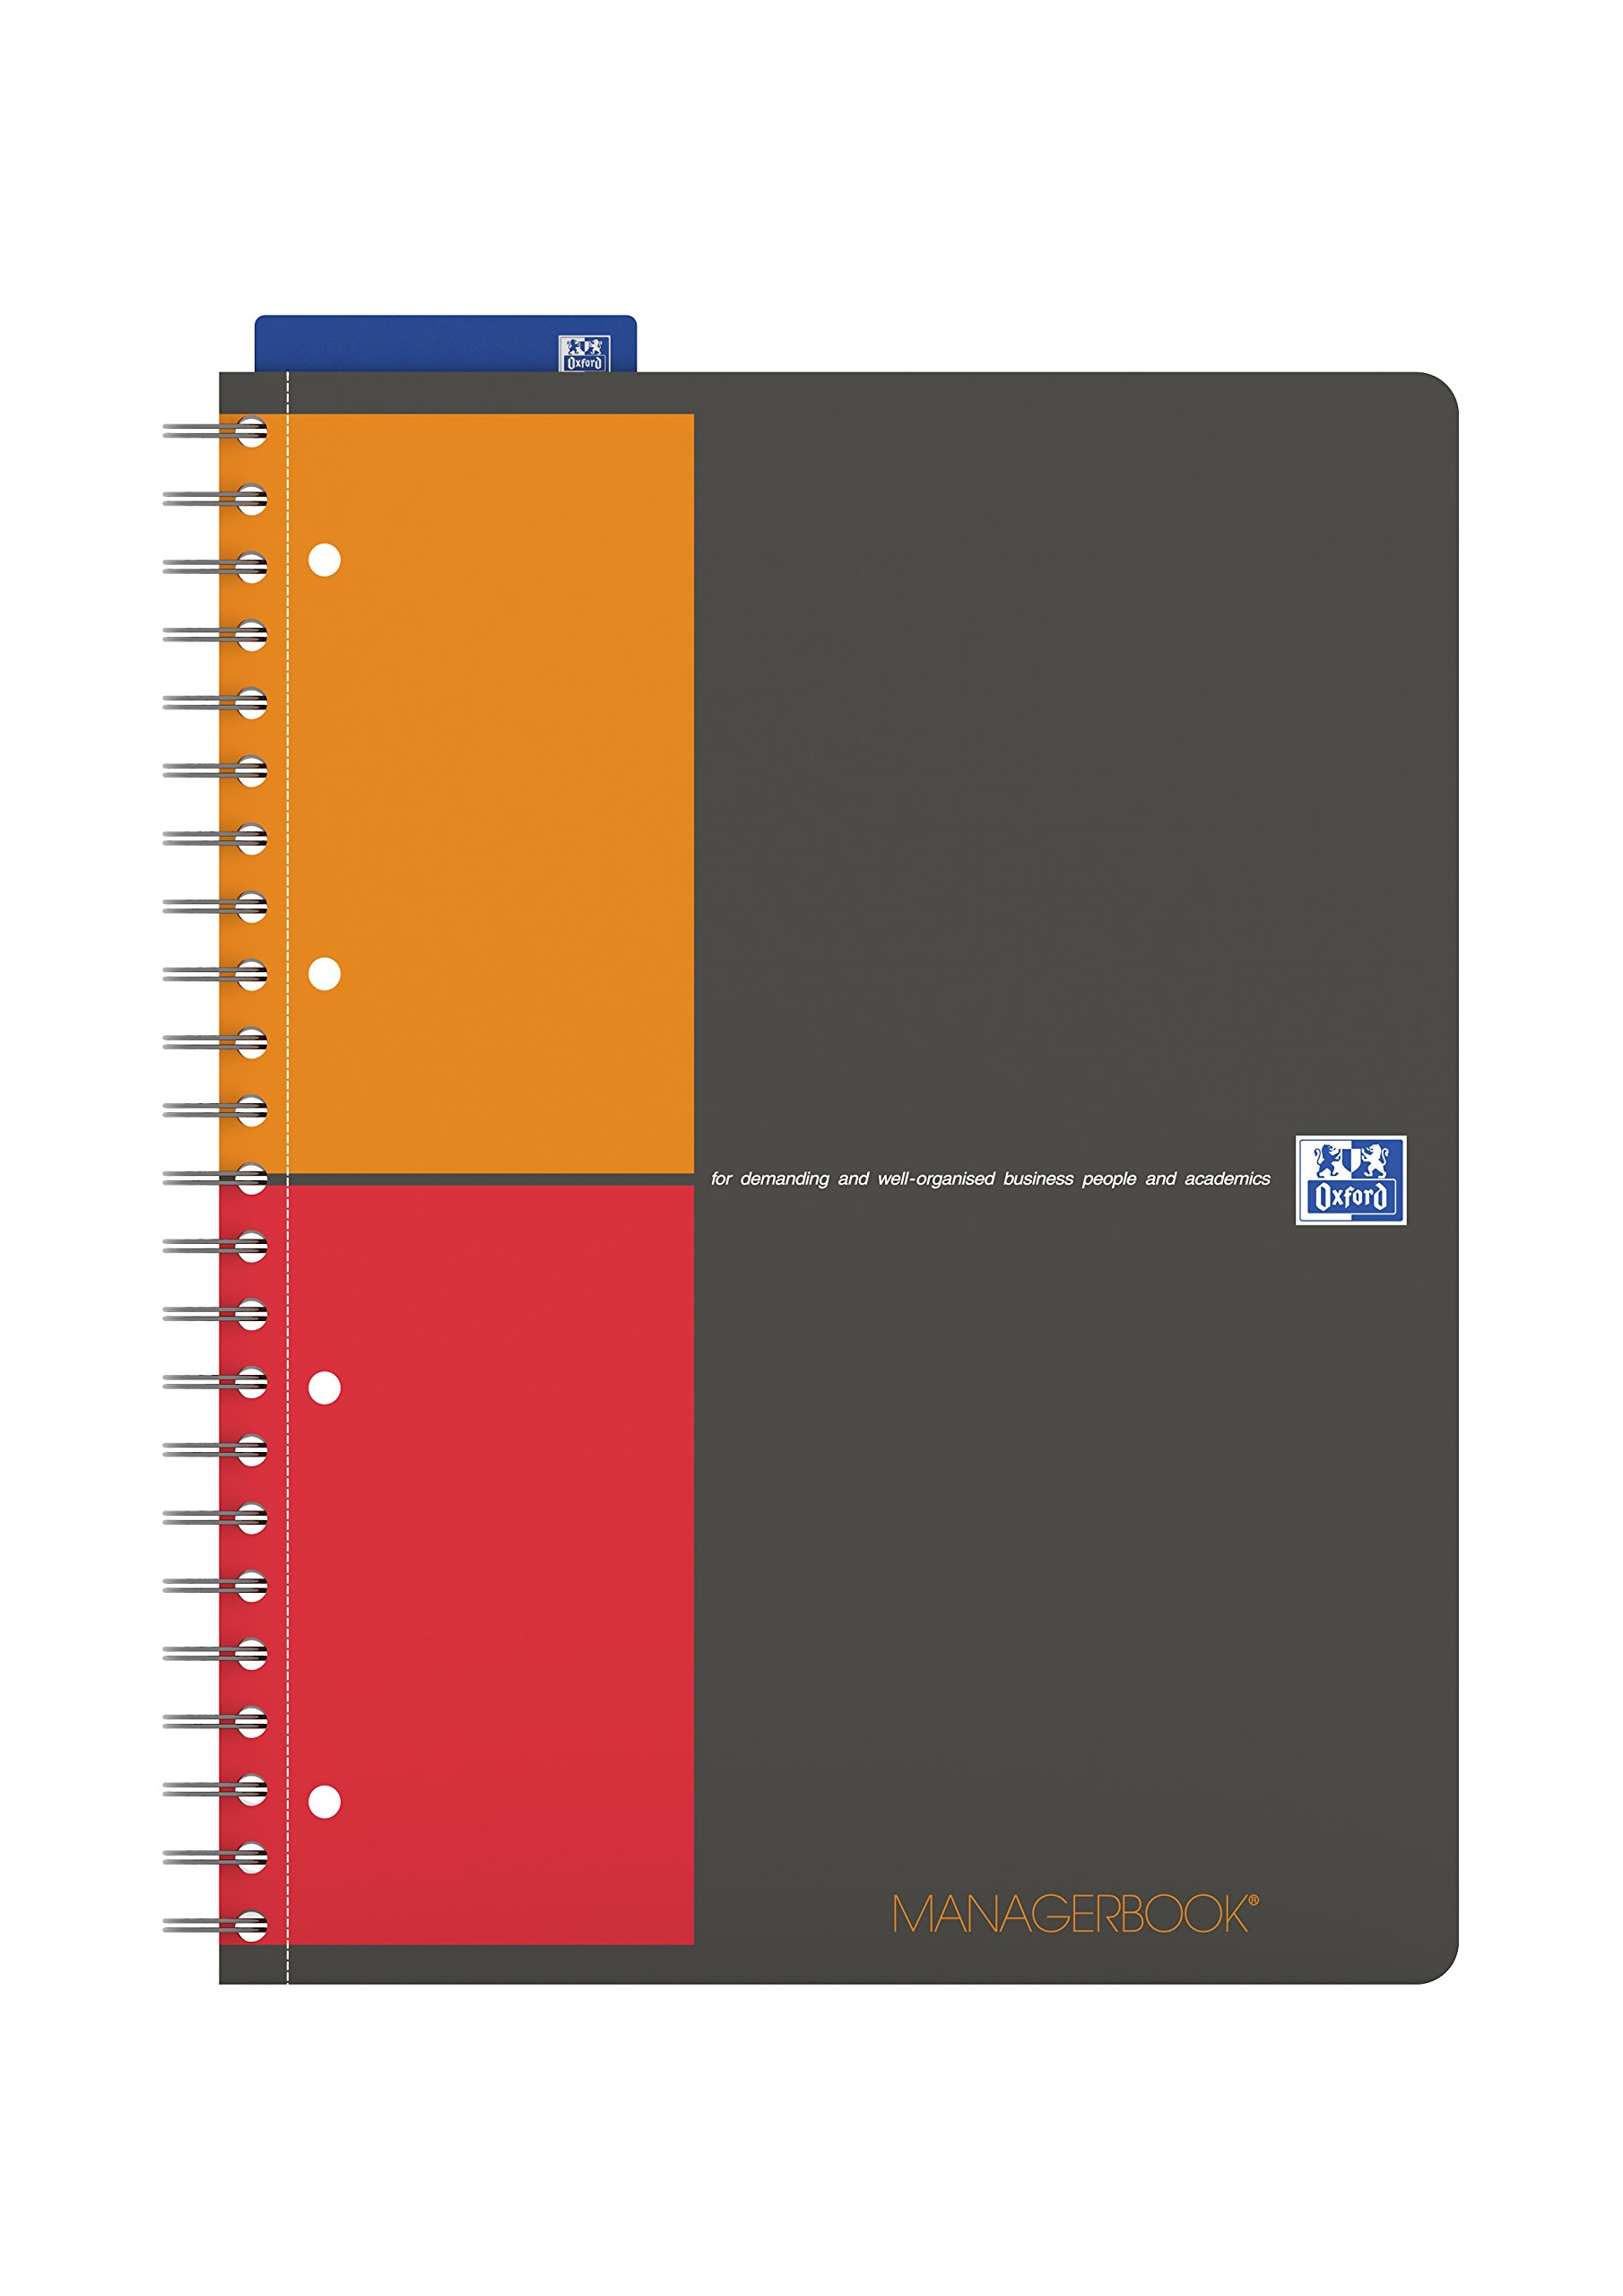 Oxford International A4+ Poly Cover Manager Book Narrow Ruled with Margin and Perforated Notebook Including Template Ruler and 5 Repositionable Dividers, 160 Page, 1 Notebook